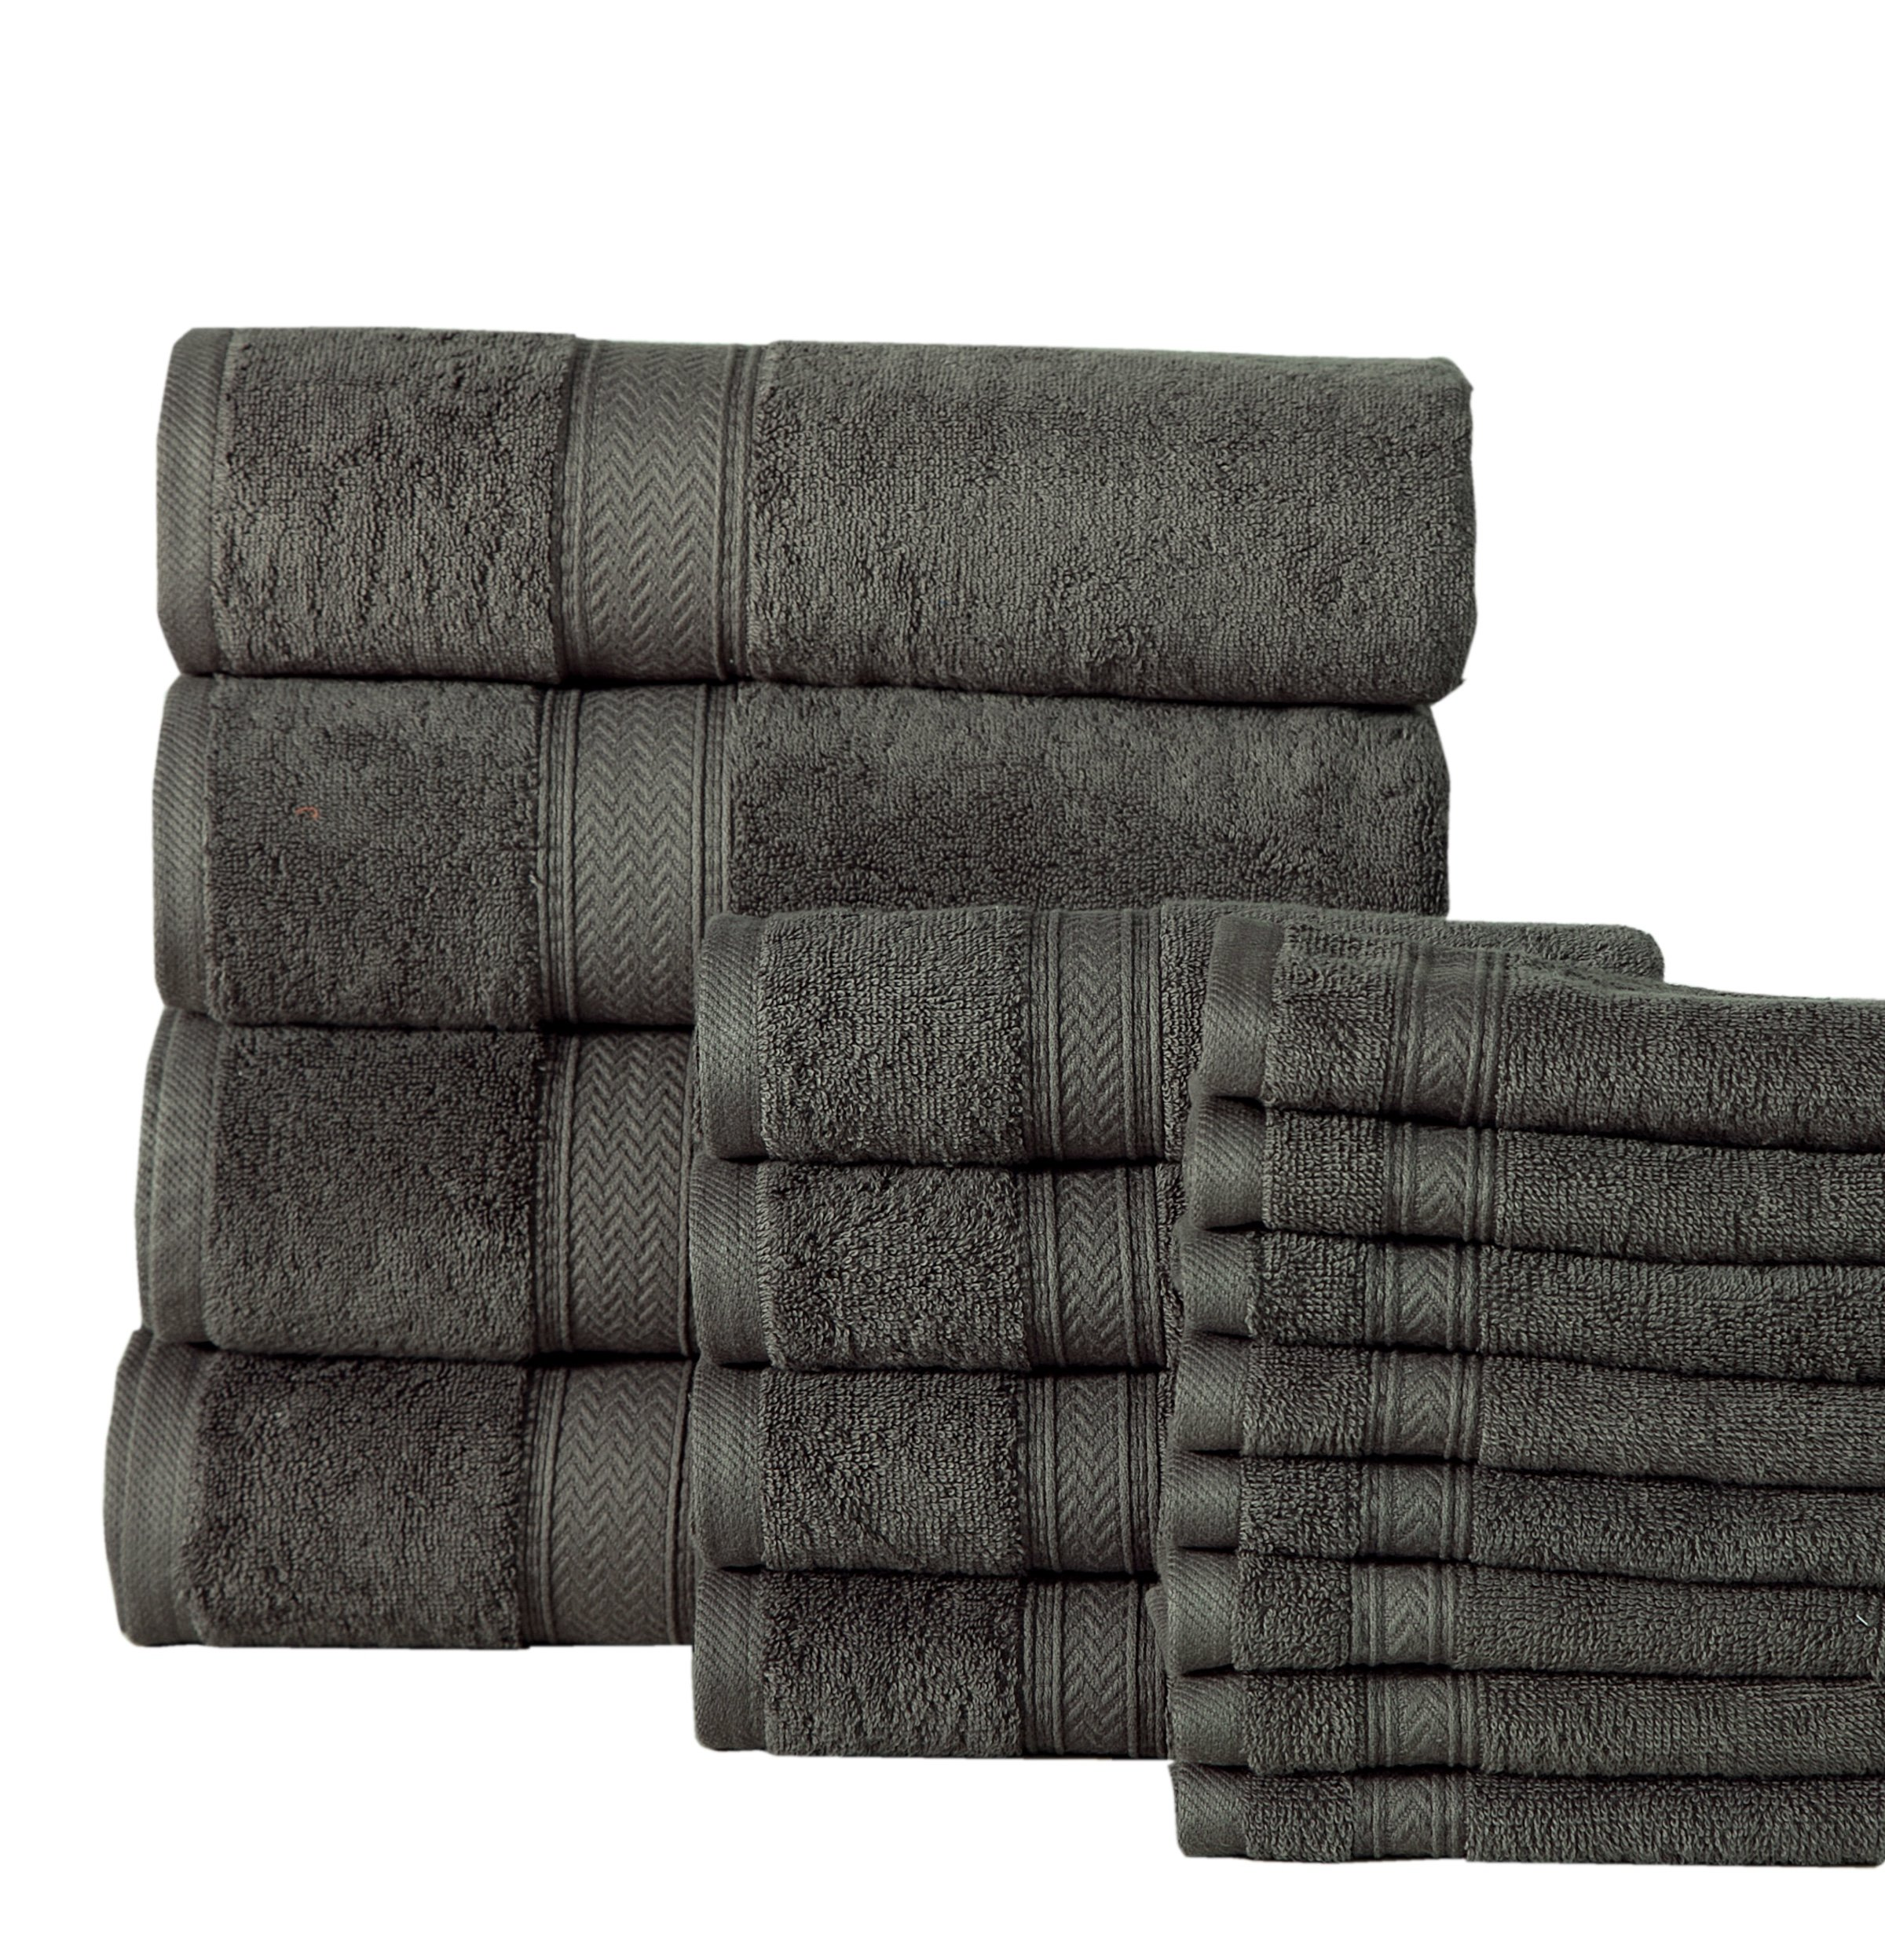 Affinity Home Collection 16 Piece 600 GSM Luxurious Soft Cotton Luxury Towel Set, Grey